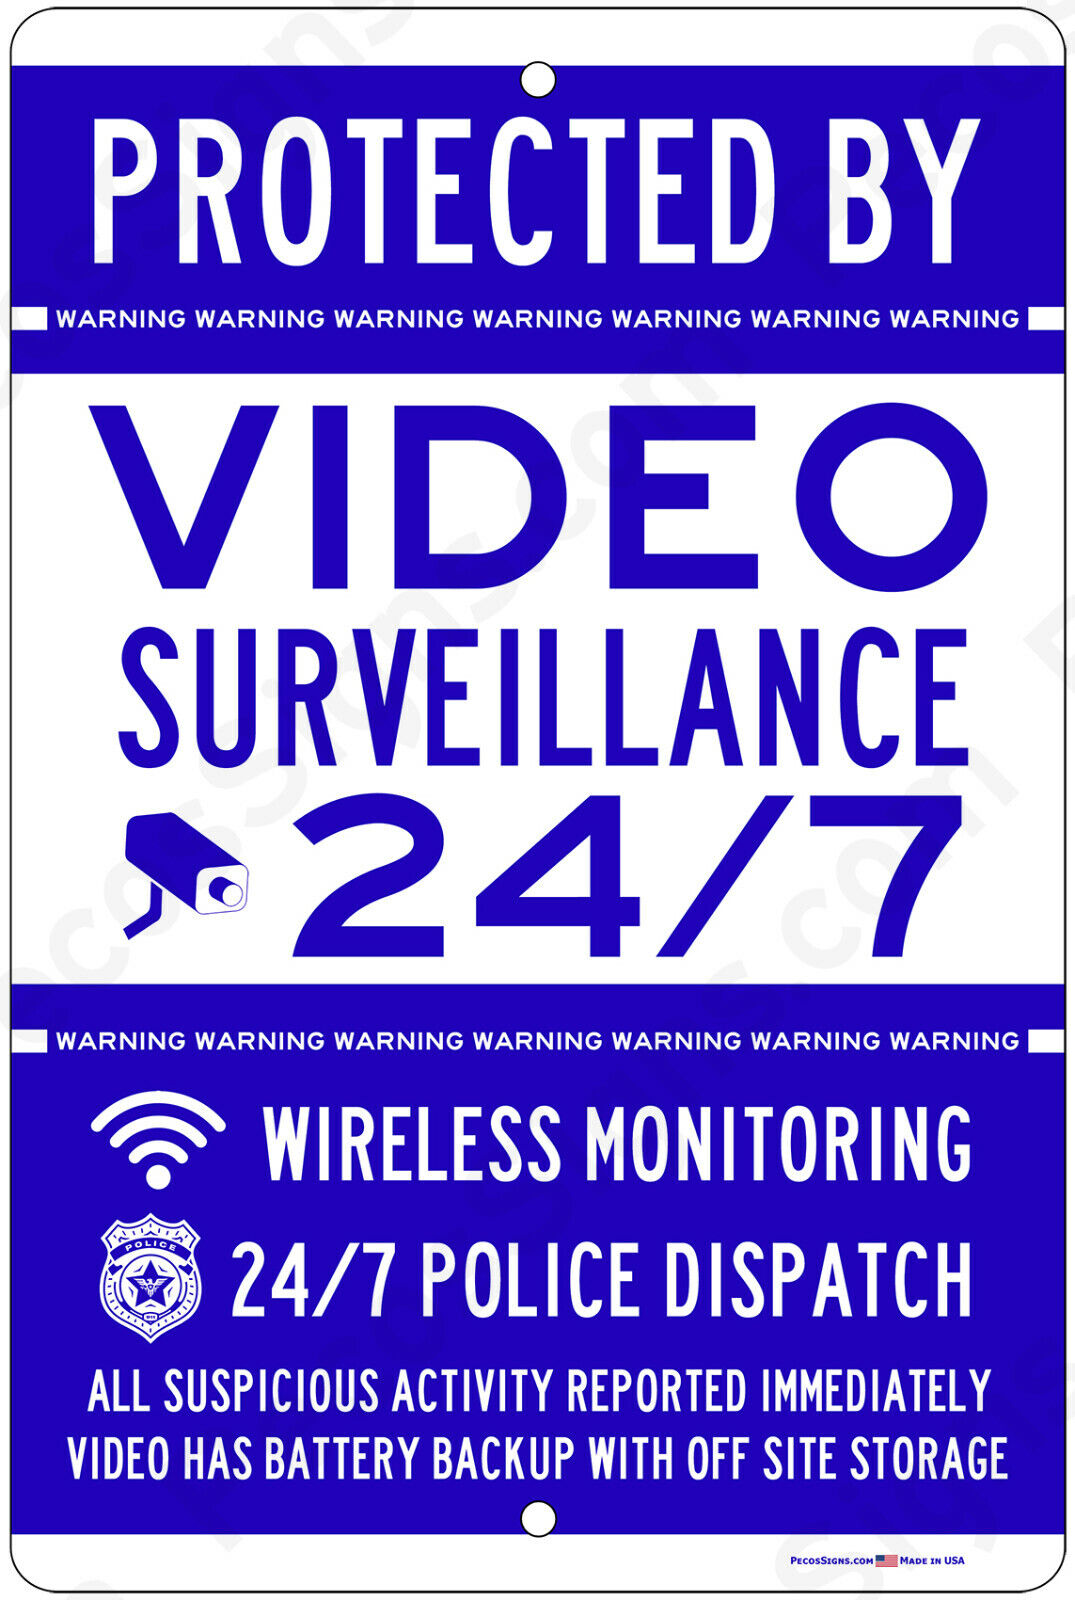 Protected By Video Surveillance CCTV Warning Security Camera